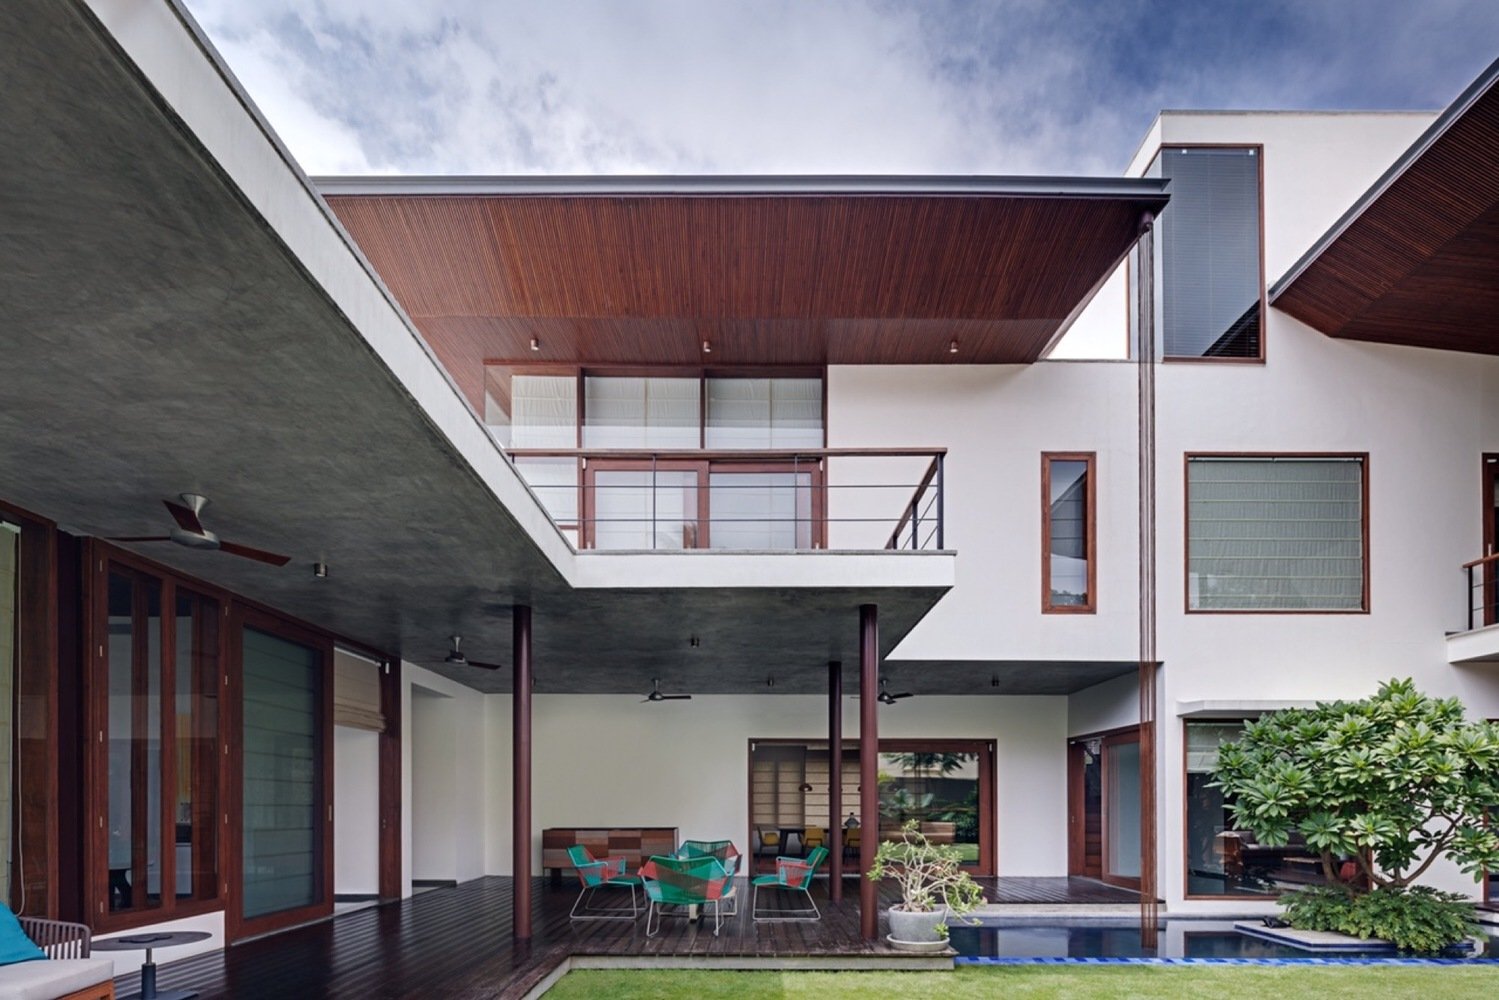 House 1058,Courtesy of Khosla Associates